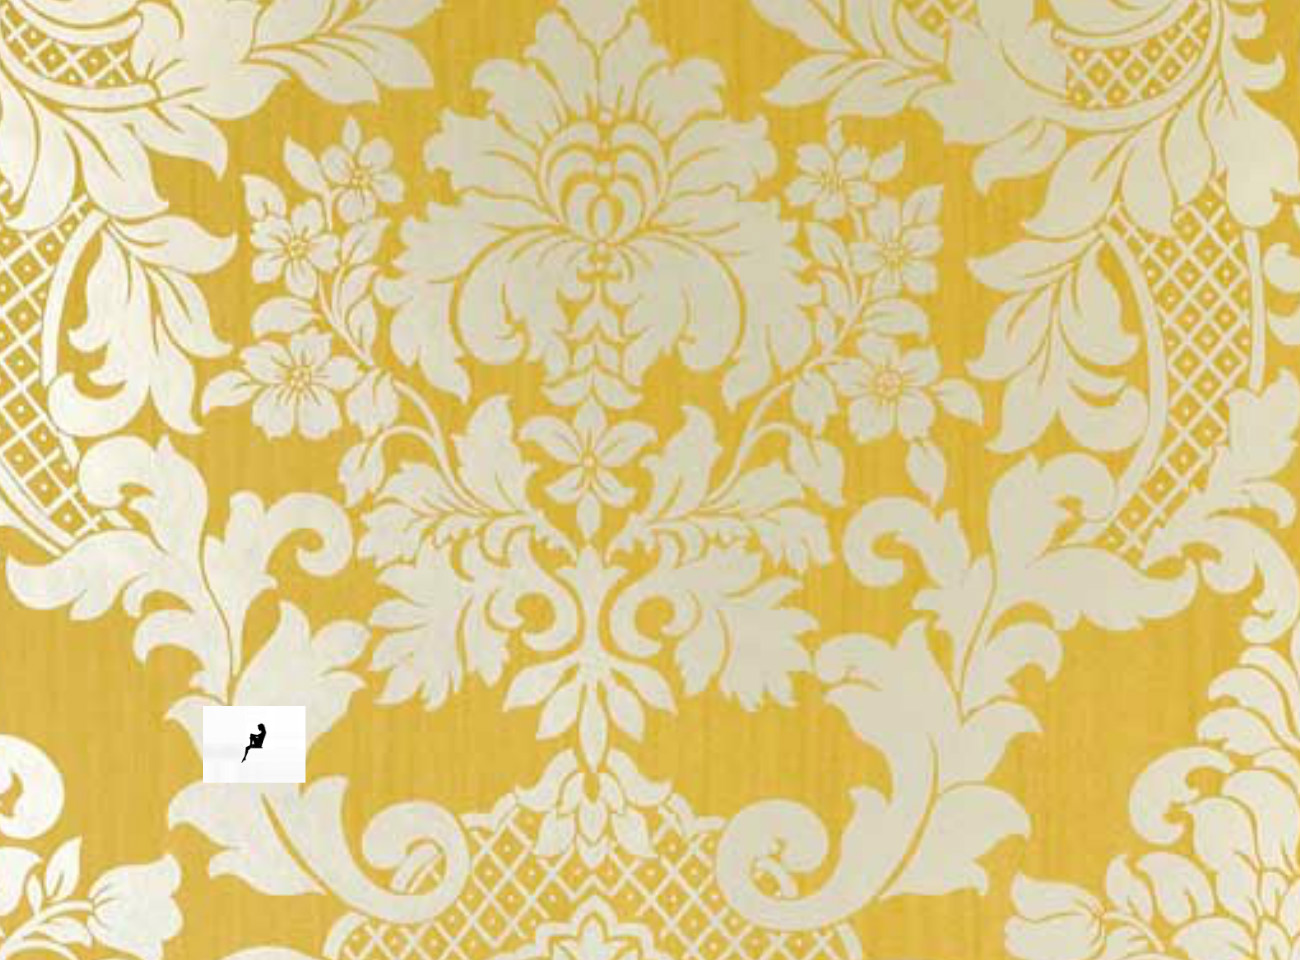 SparkNotes The Yellow Wallpaper Important Quotations